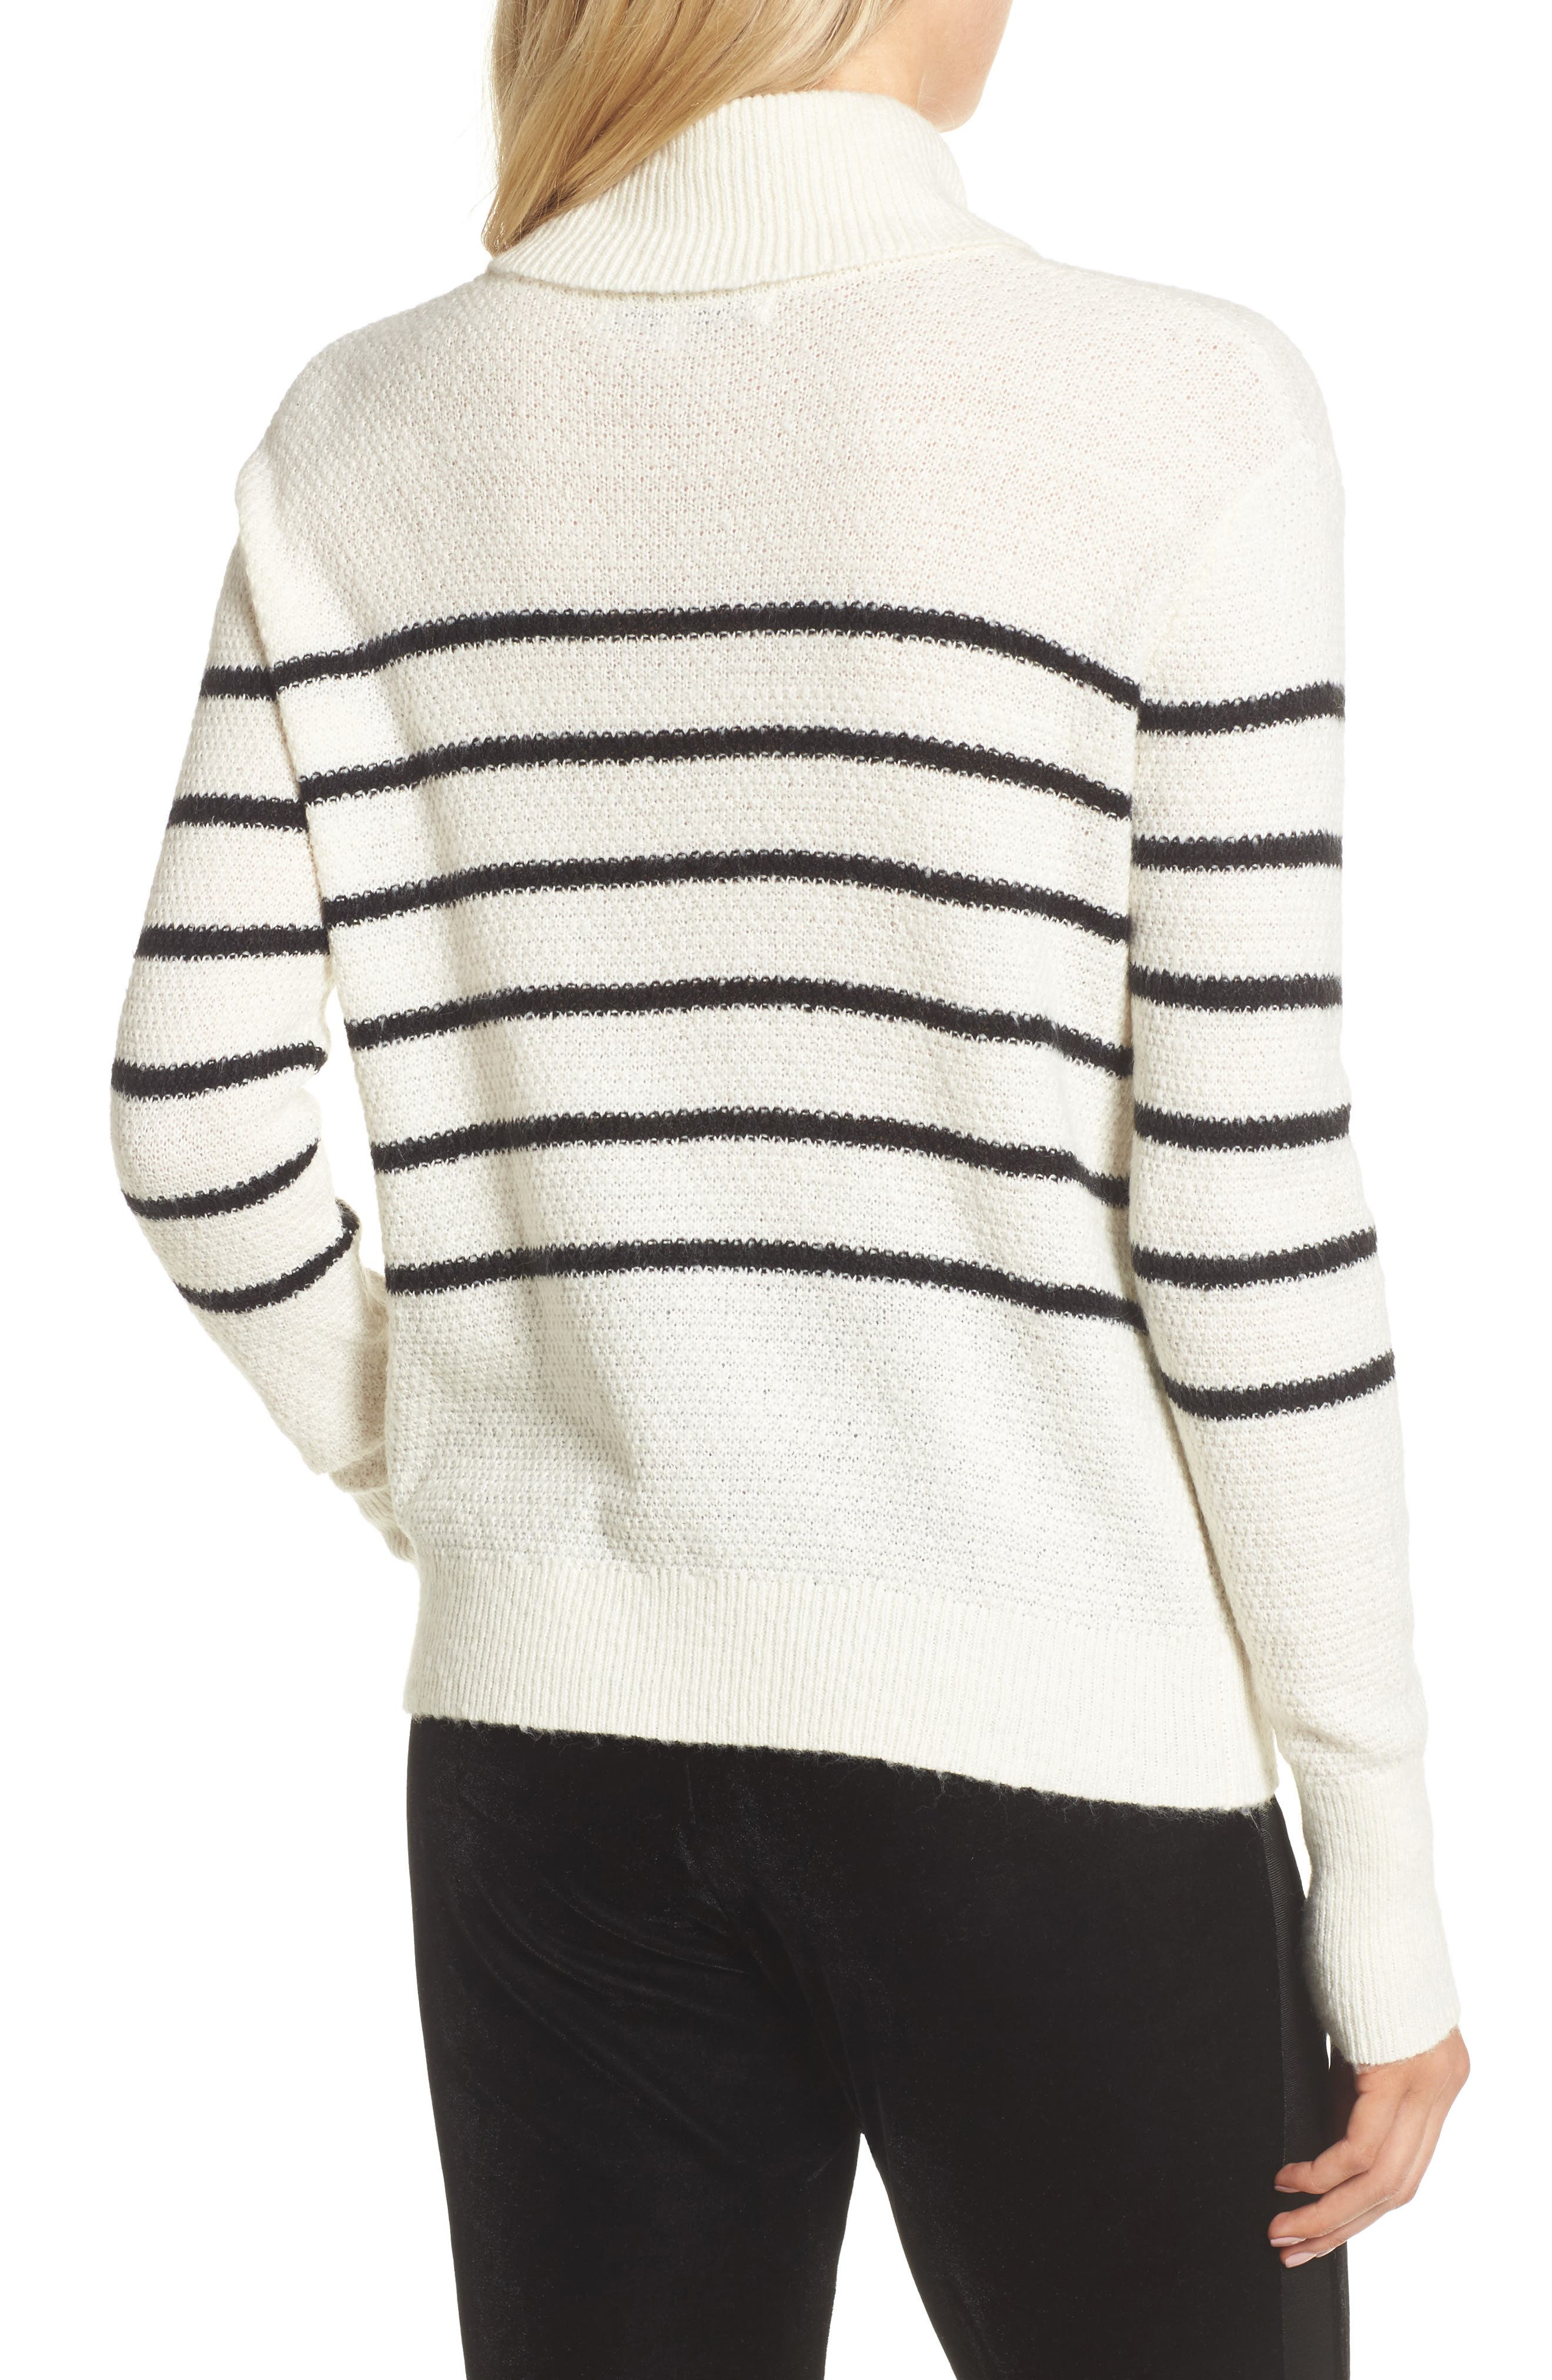 Renny Turtleneck Sweater,                             Alternate thumbnail 4, color,